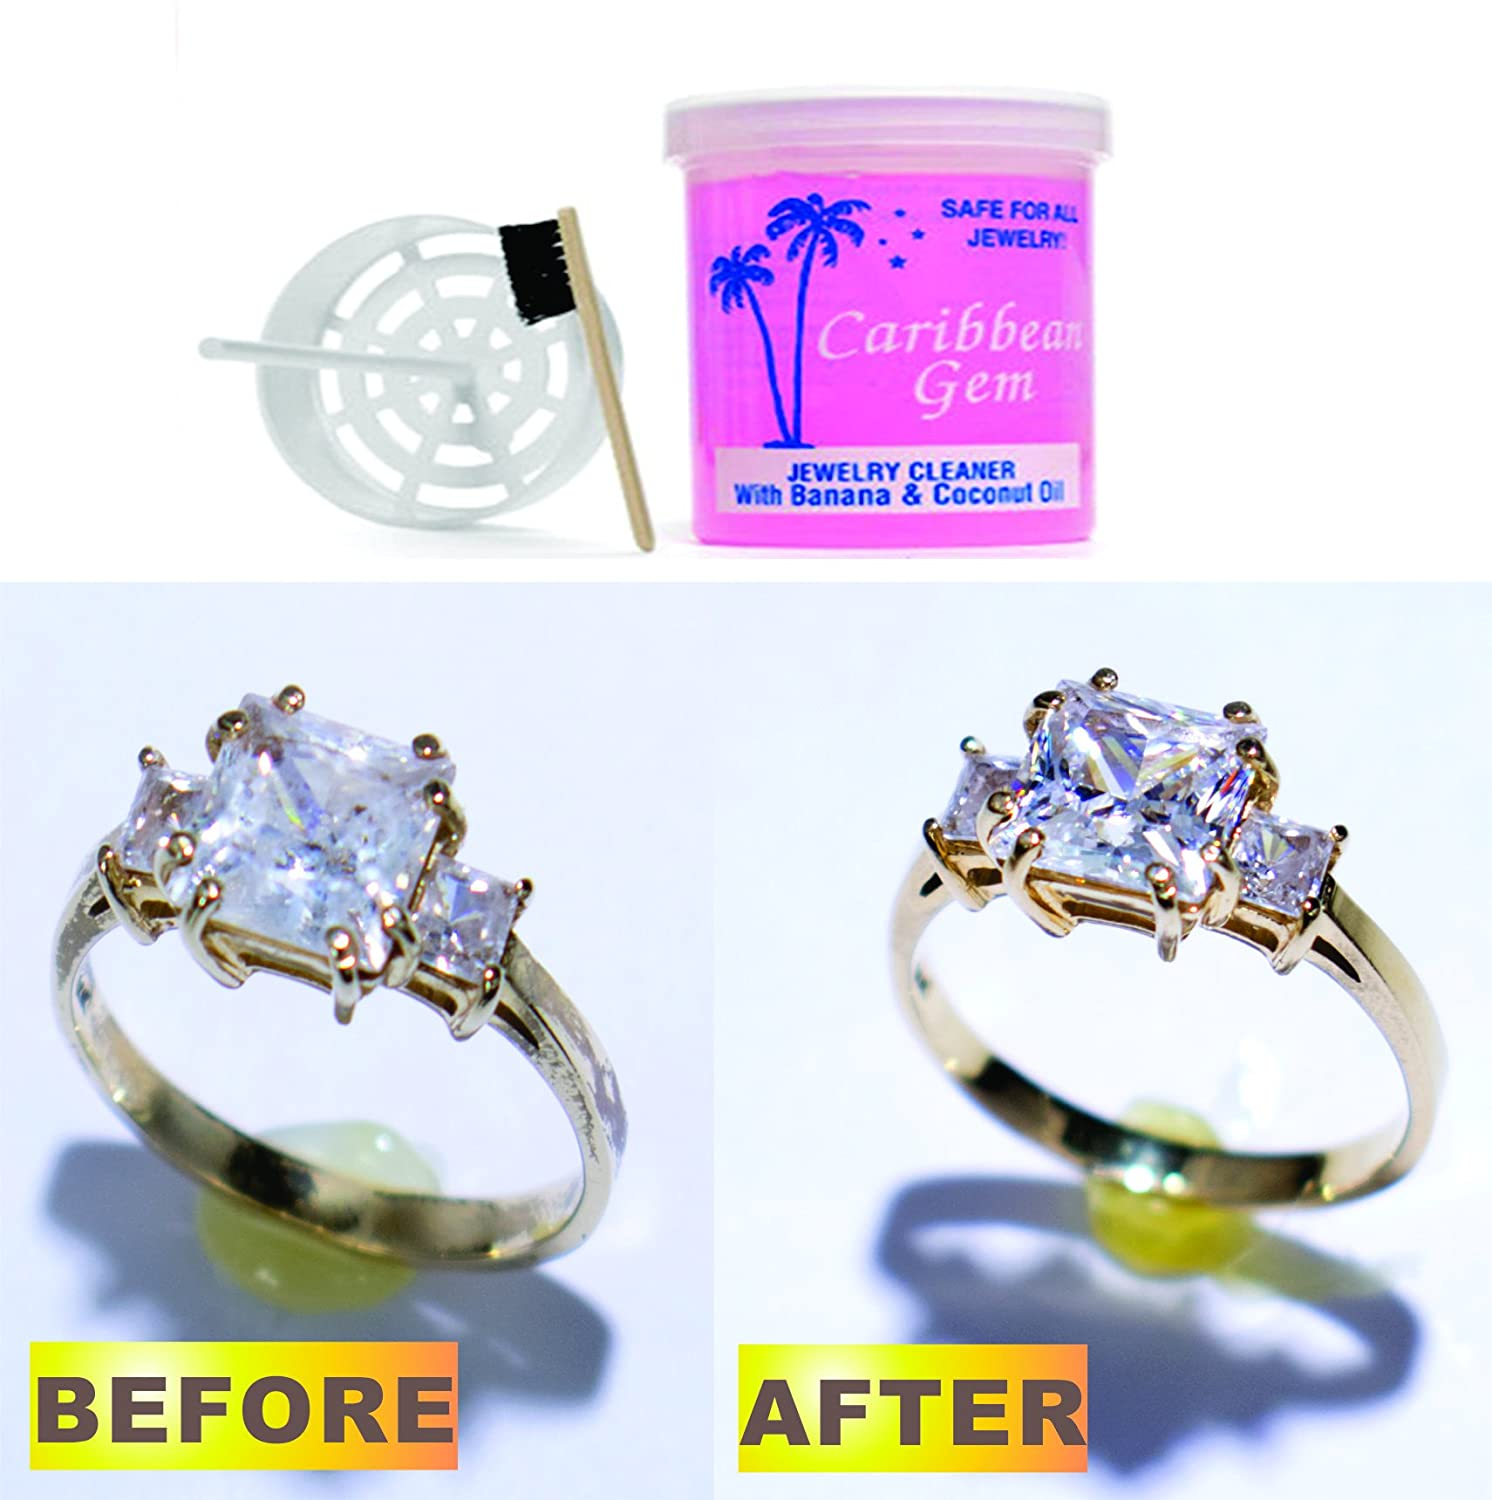 Amazon: Caribbean Gem Banana & Coconut Oil Jewelry Cleaner 16oz Refill:  Jewelry Cleaning And Care Products: Jewelry